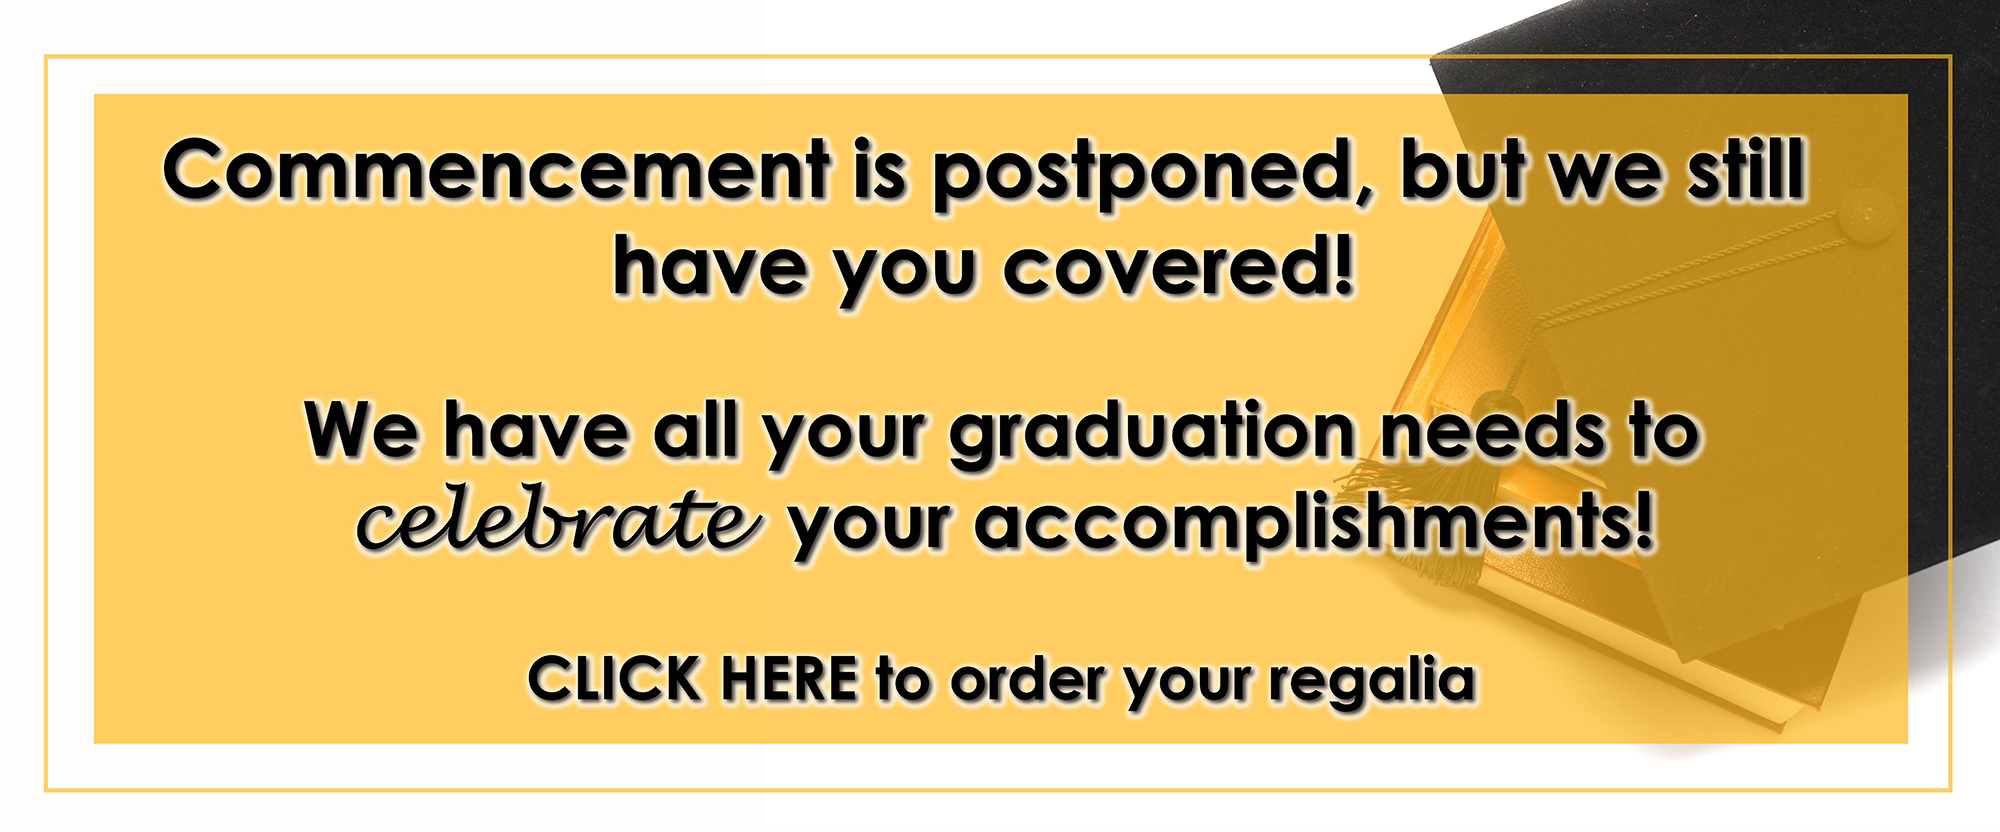 commencement postponed